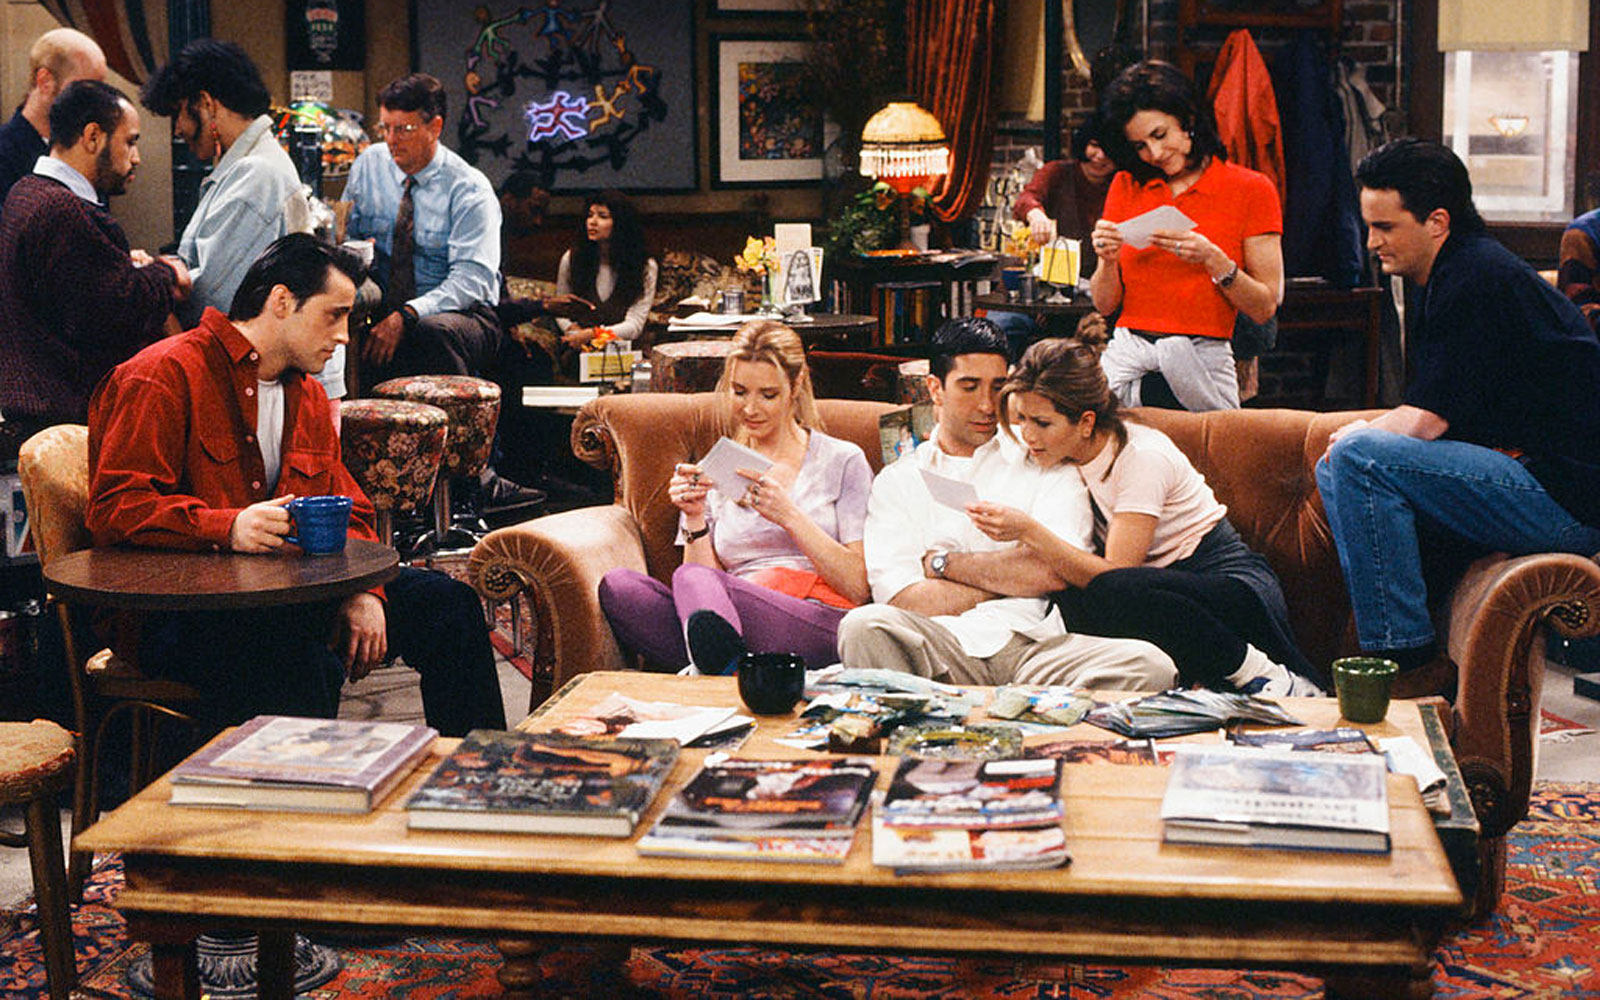 The Friends Limited Edition Central Perk Coffee is Officially Available on Amazon